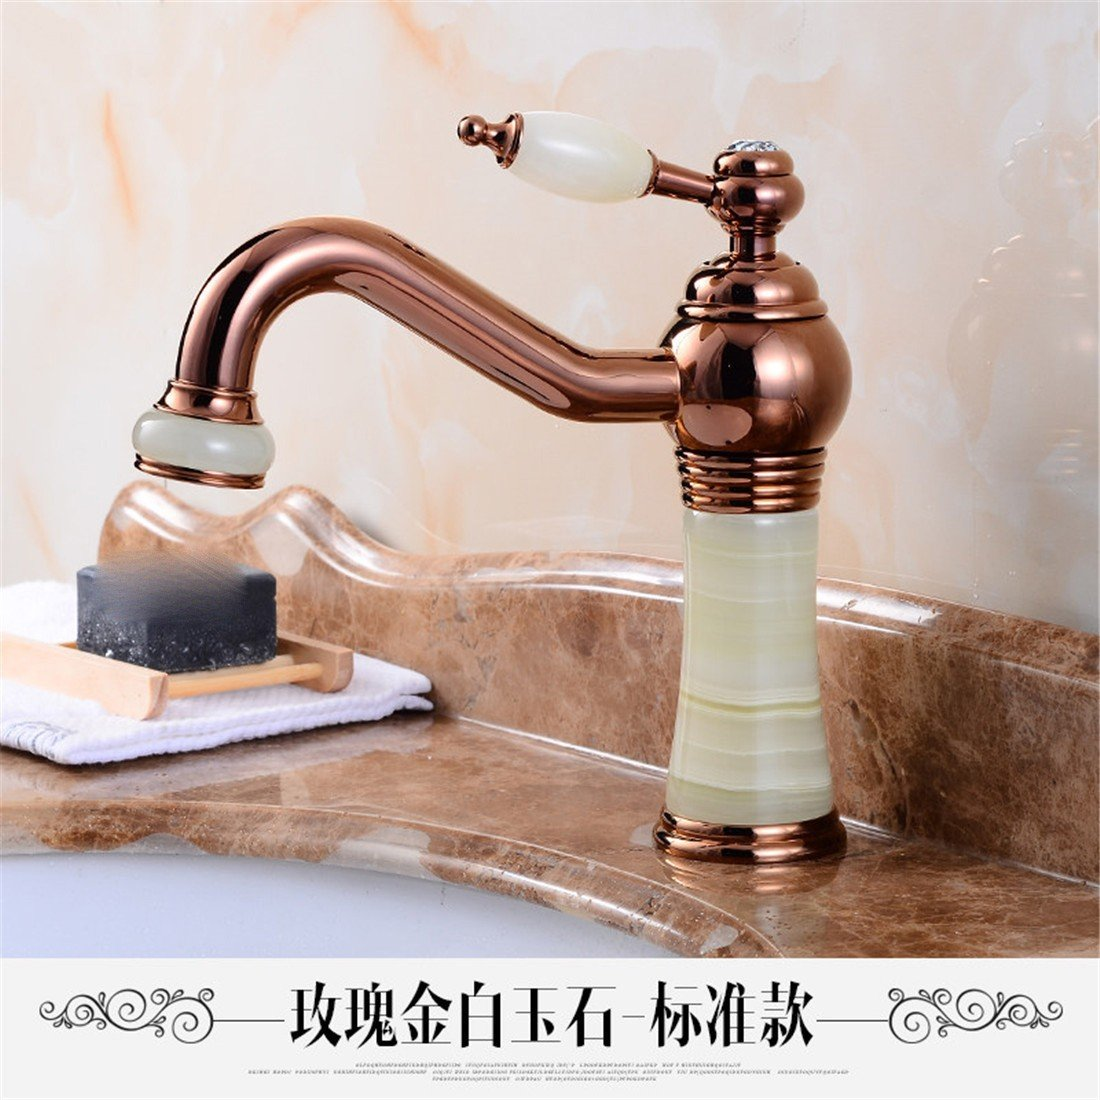 pink gold White Jade 2 Hlluya Professional Sink Mixer Tap Kitchen Faucet The Jade faucet marble washbasins pink gold basin full copper golden basin of hot and cold taps, God light blond white jade